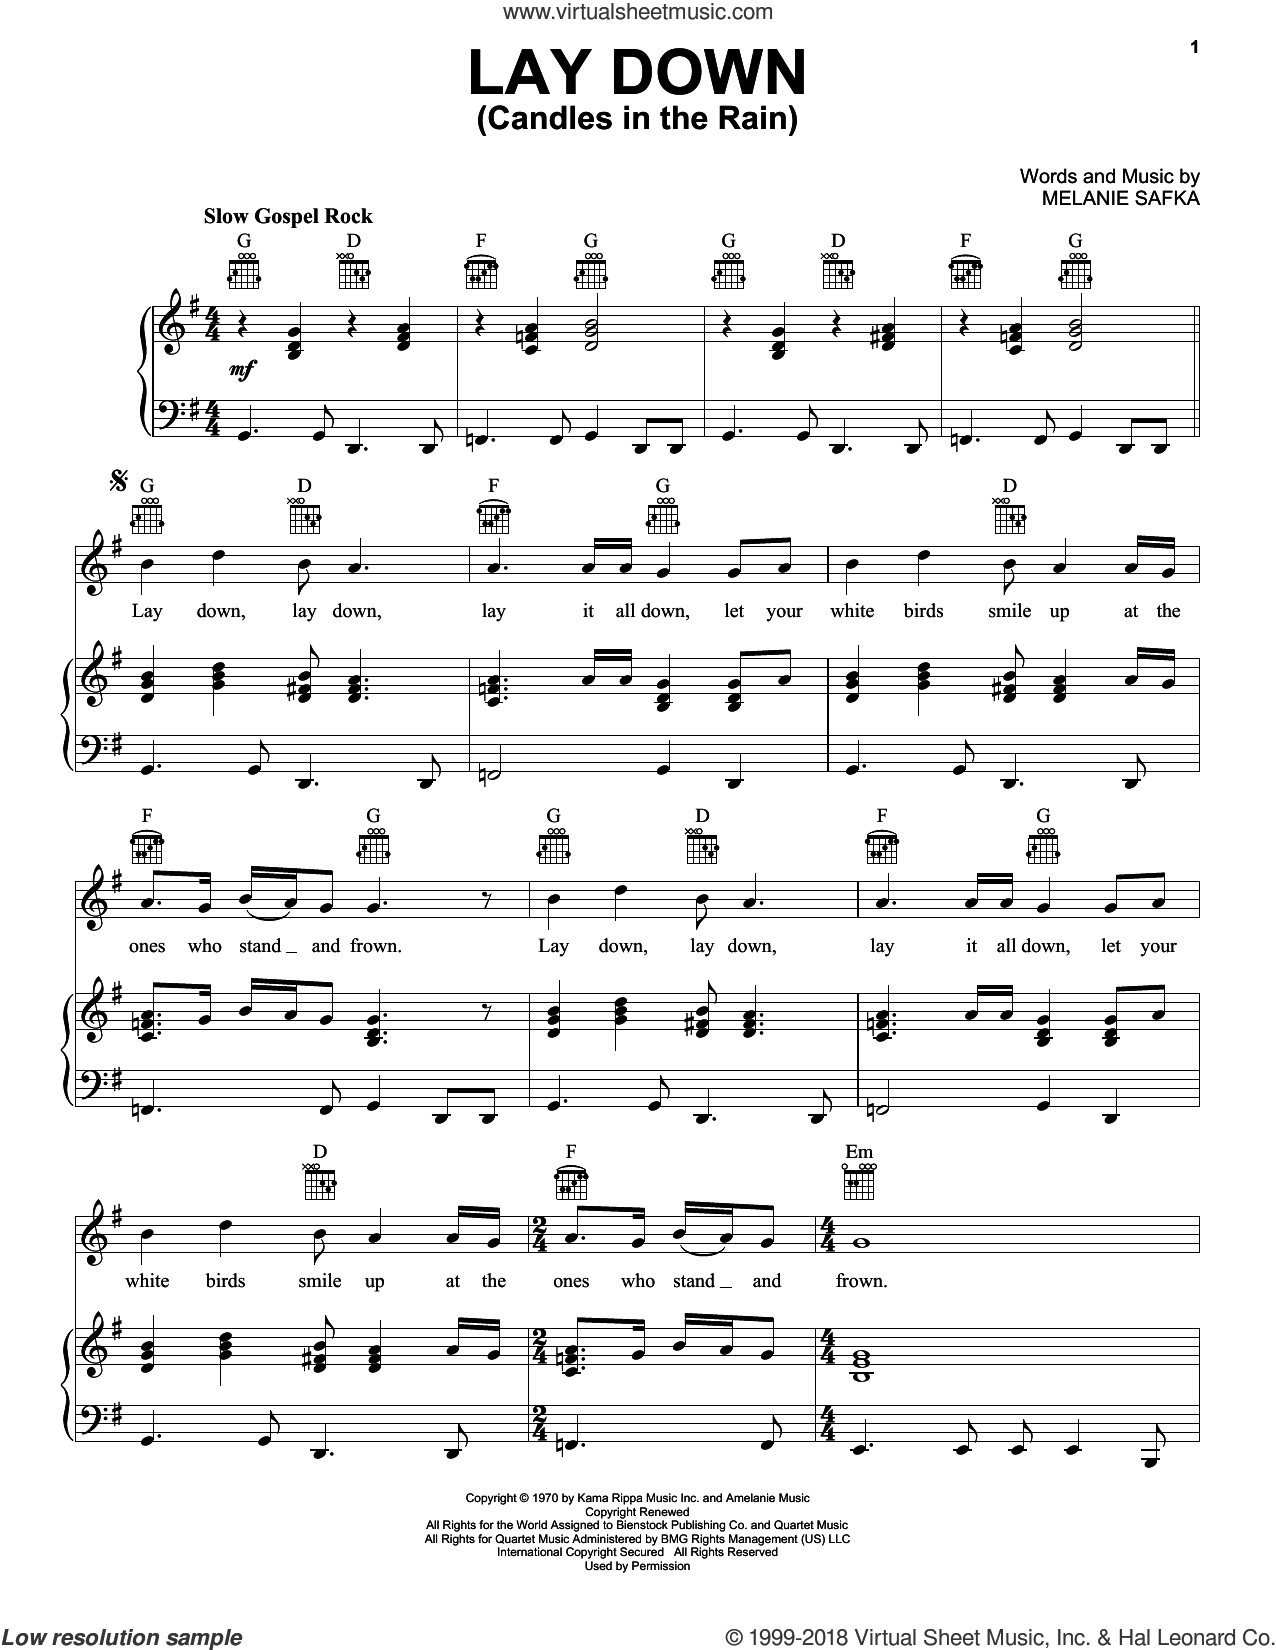 Lay Down (Candles In The Rain) sheet music for voice, piano or guitar by Melanie and Melanie Safka, intermediate skill level